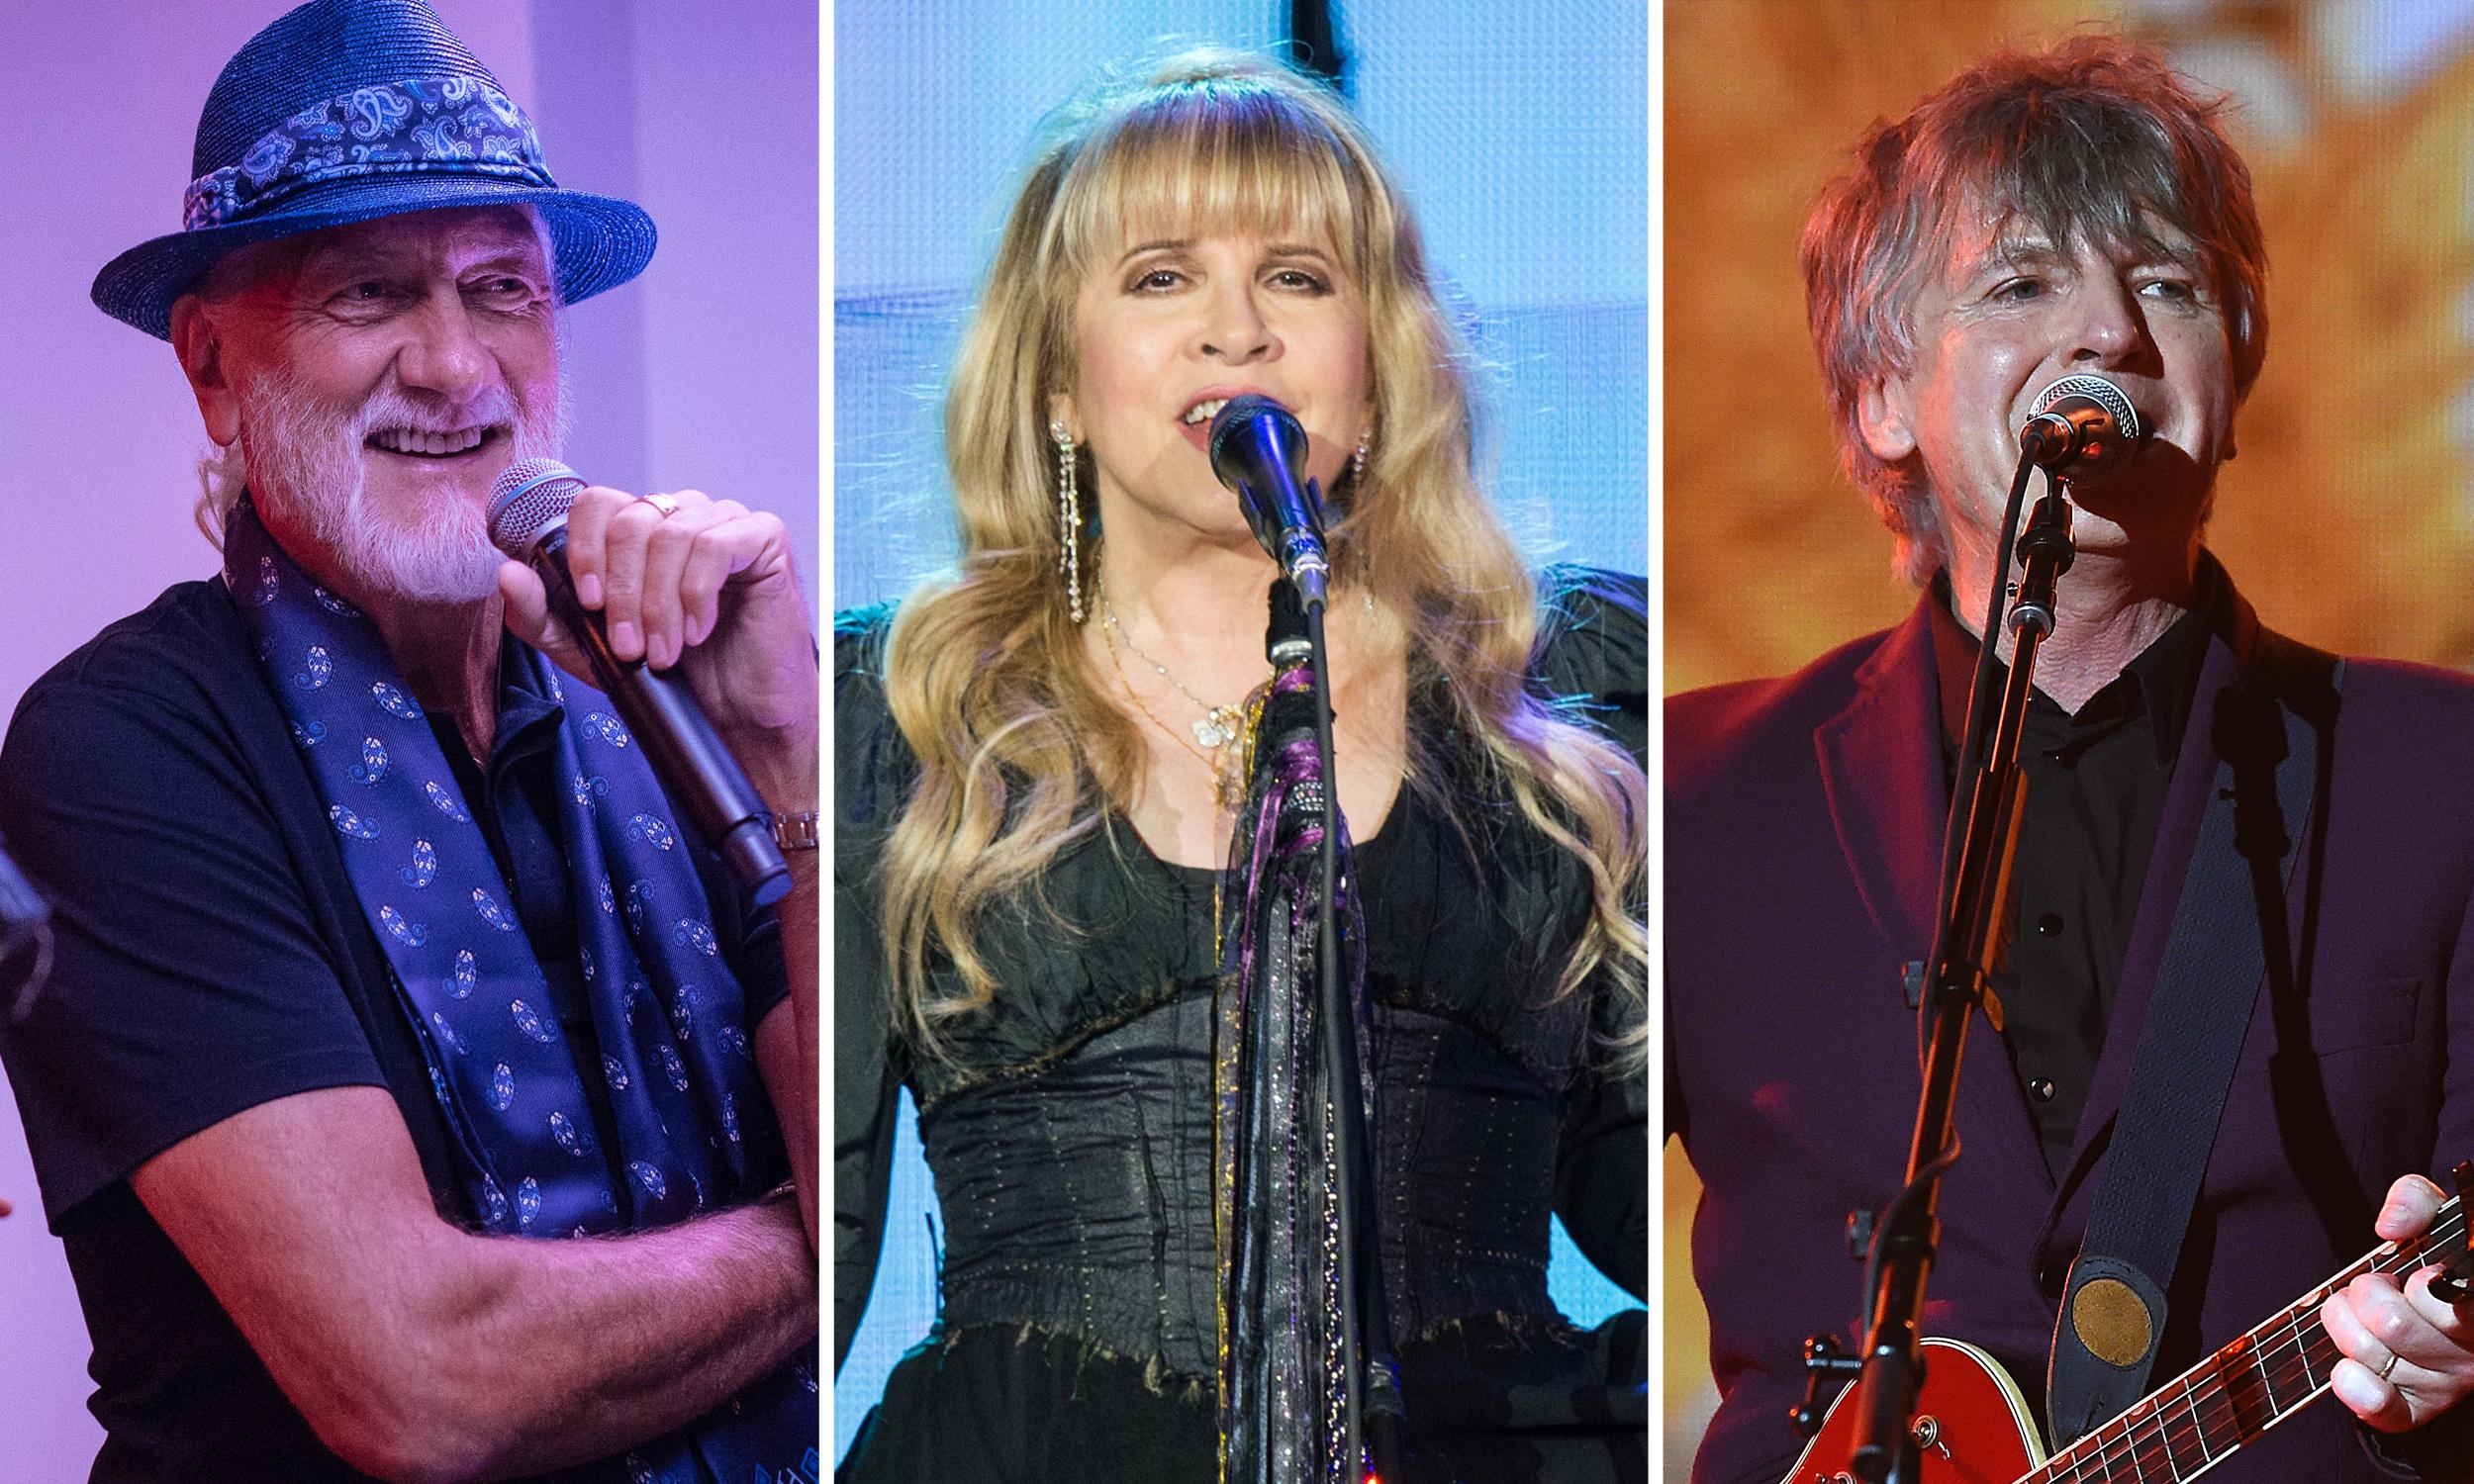 'It's a love story really': Mick Fleetwood and Stevie Nicks on wooing Neil Finn